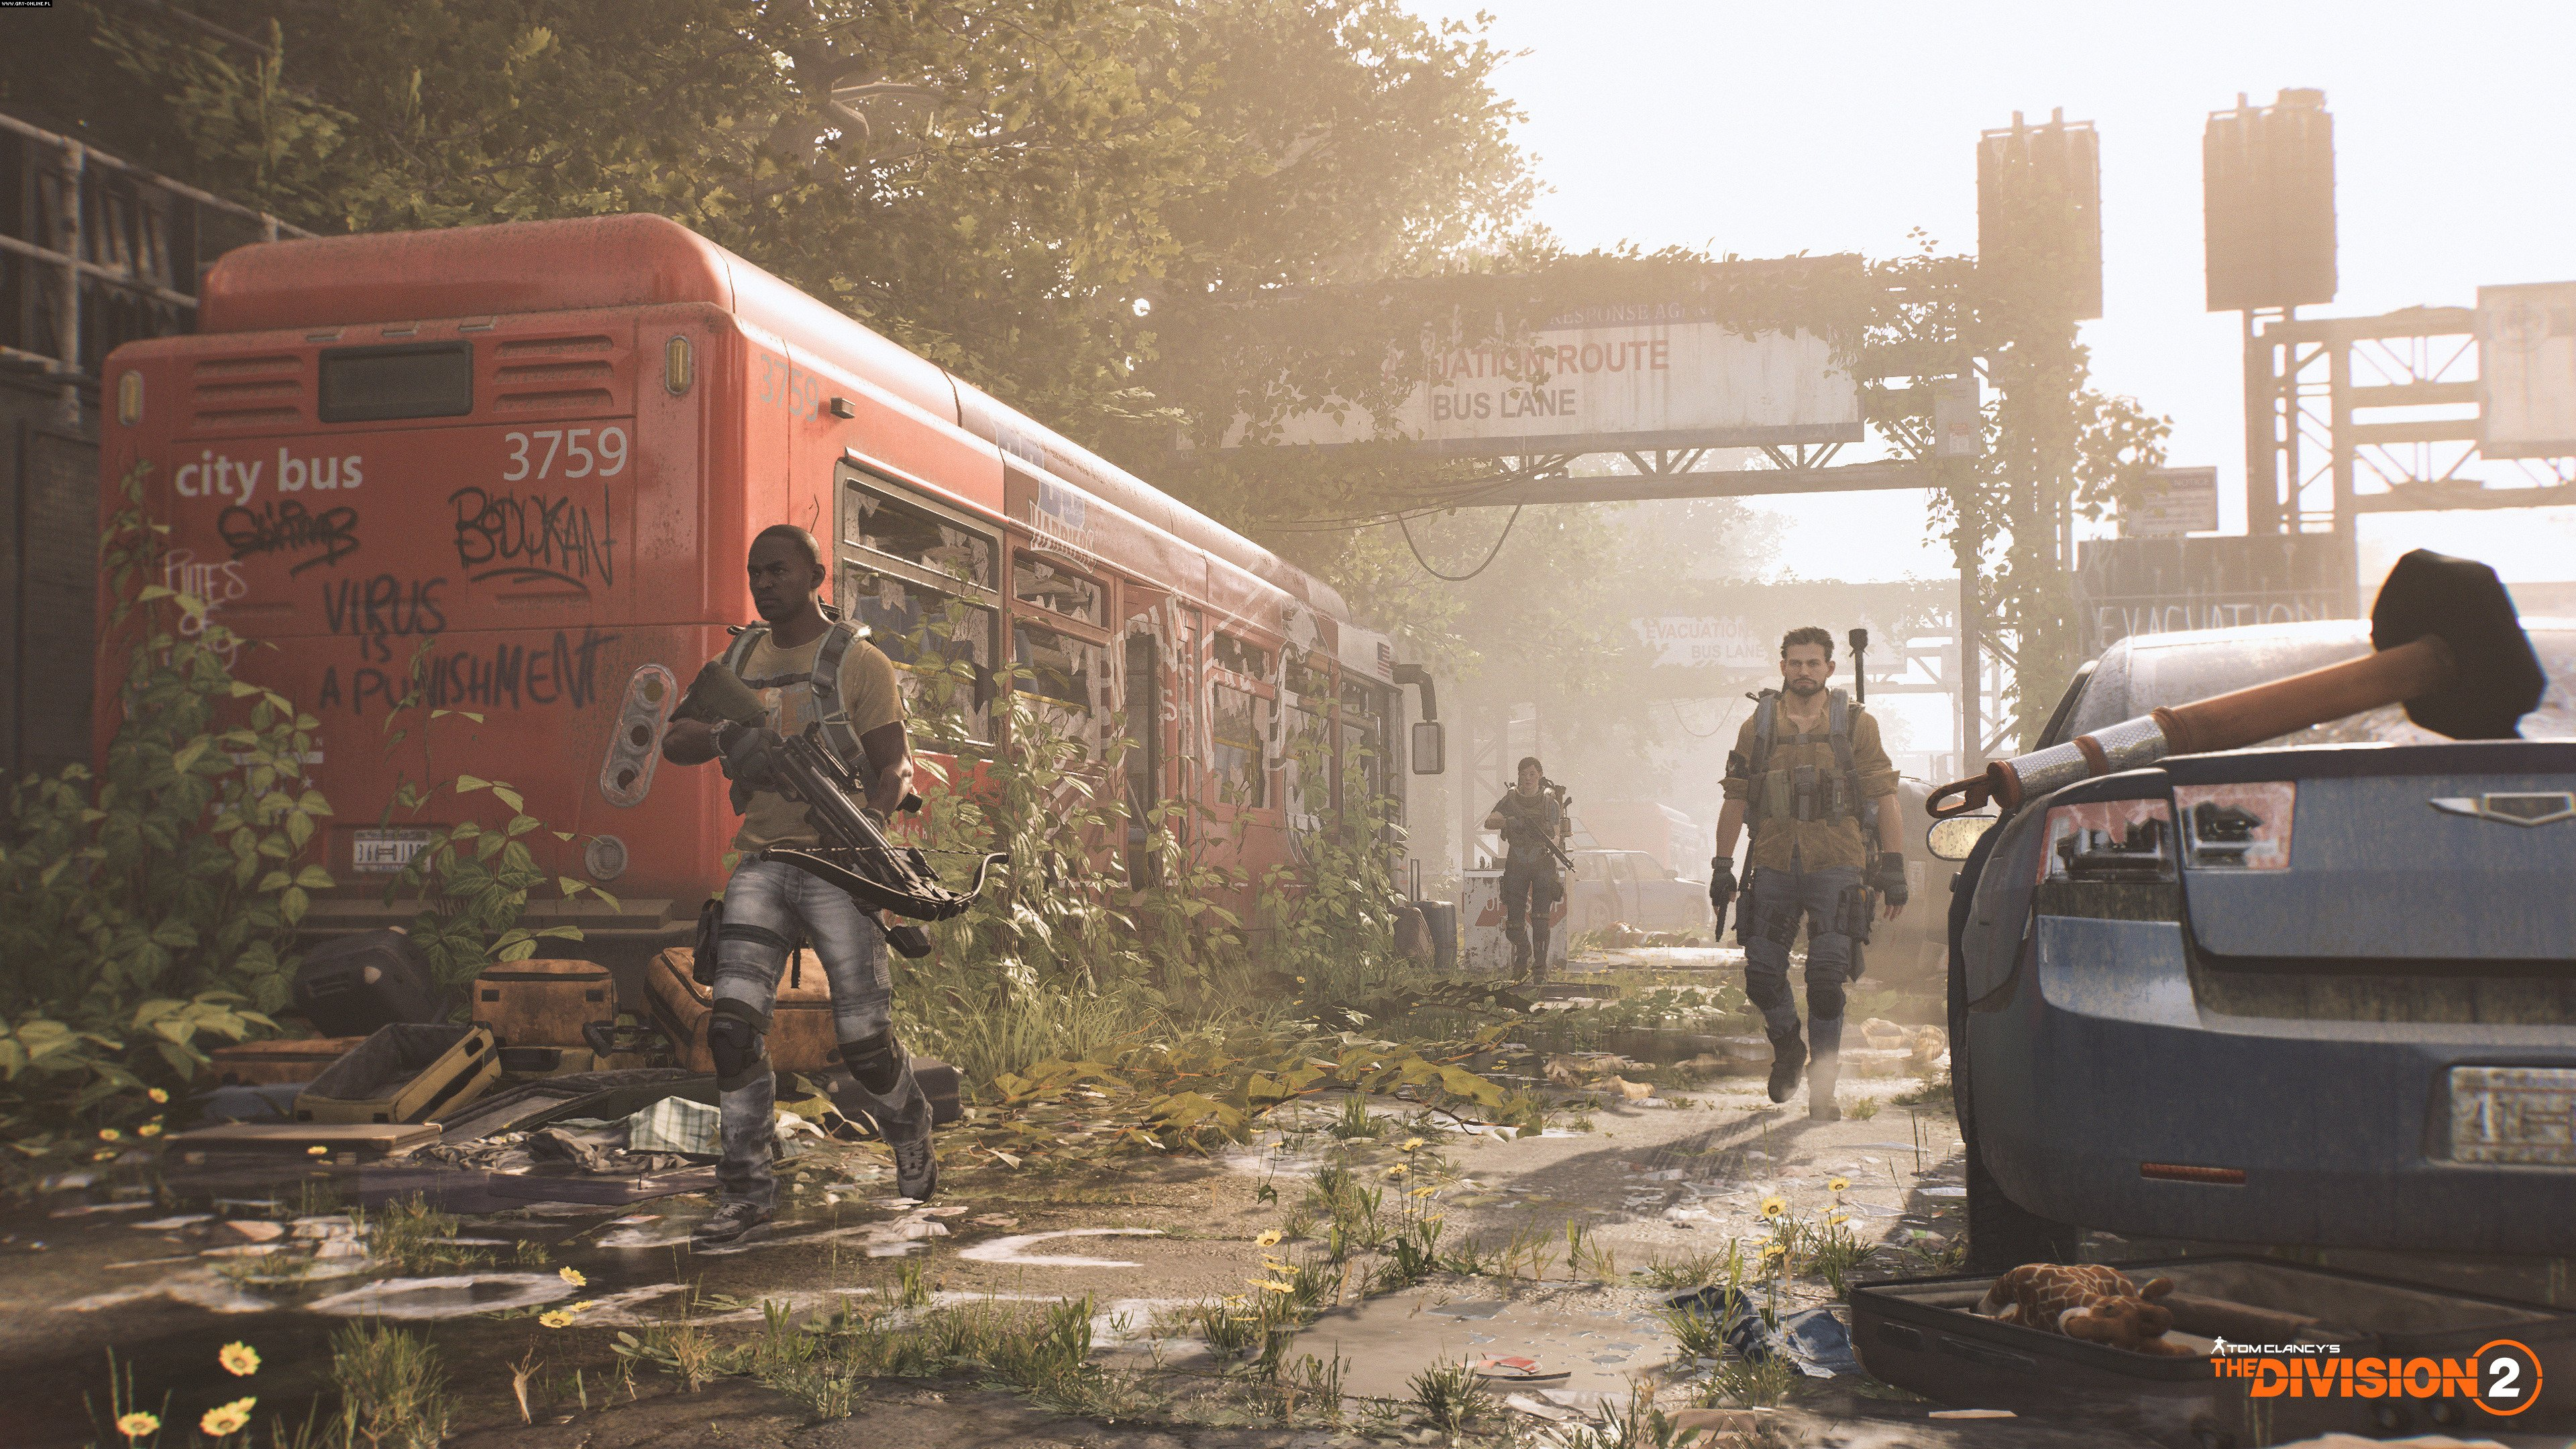 Tom Clancy's The Division 2 PC, PS4, XONE Games Image 41/59, Massive Entertainment / Ubisoft Massive, Ubisoft